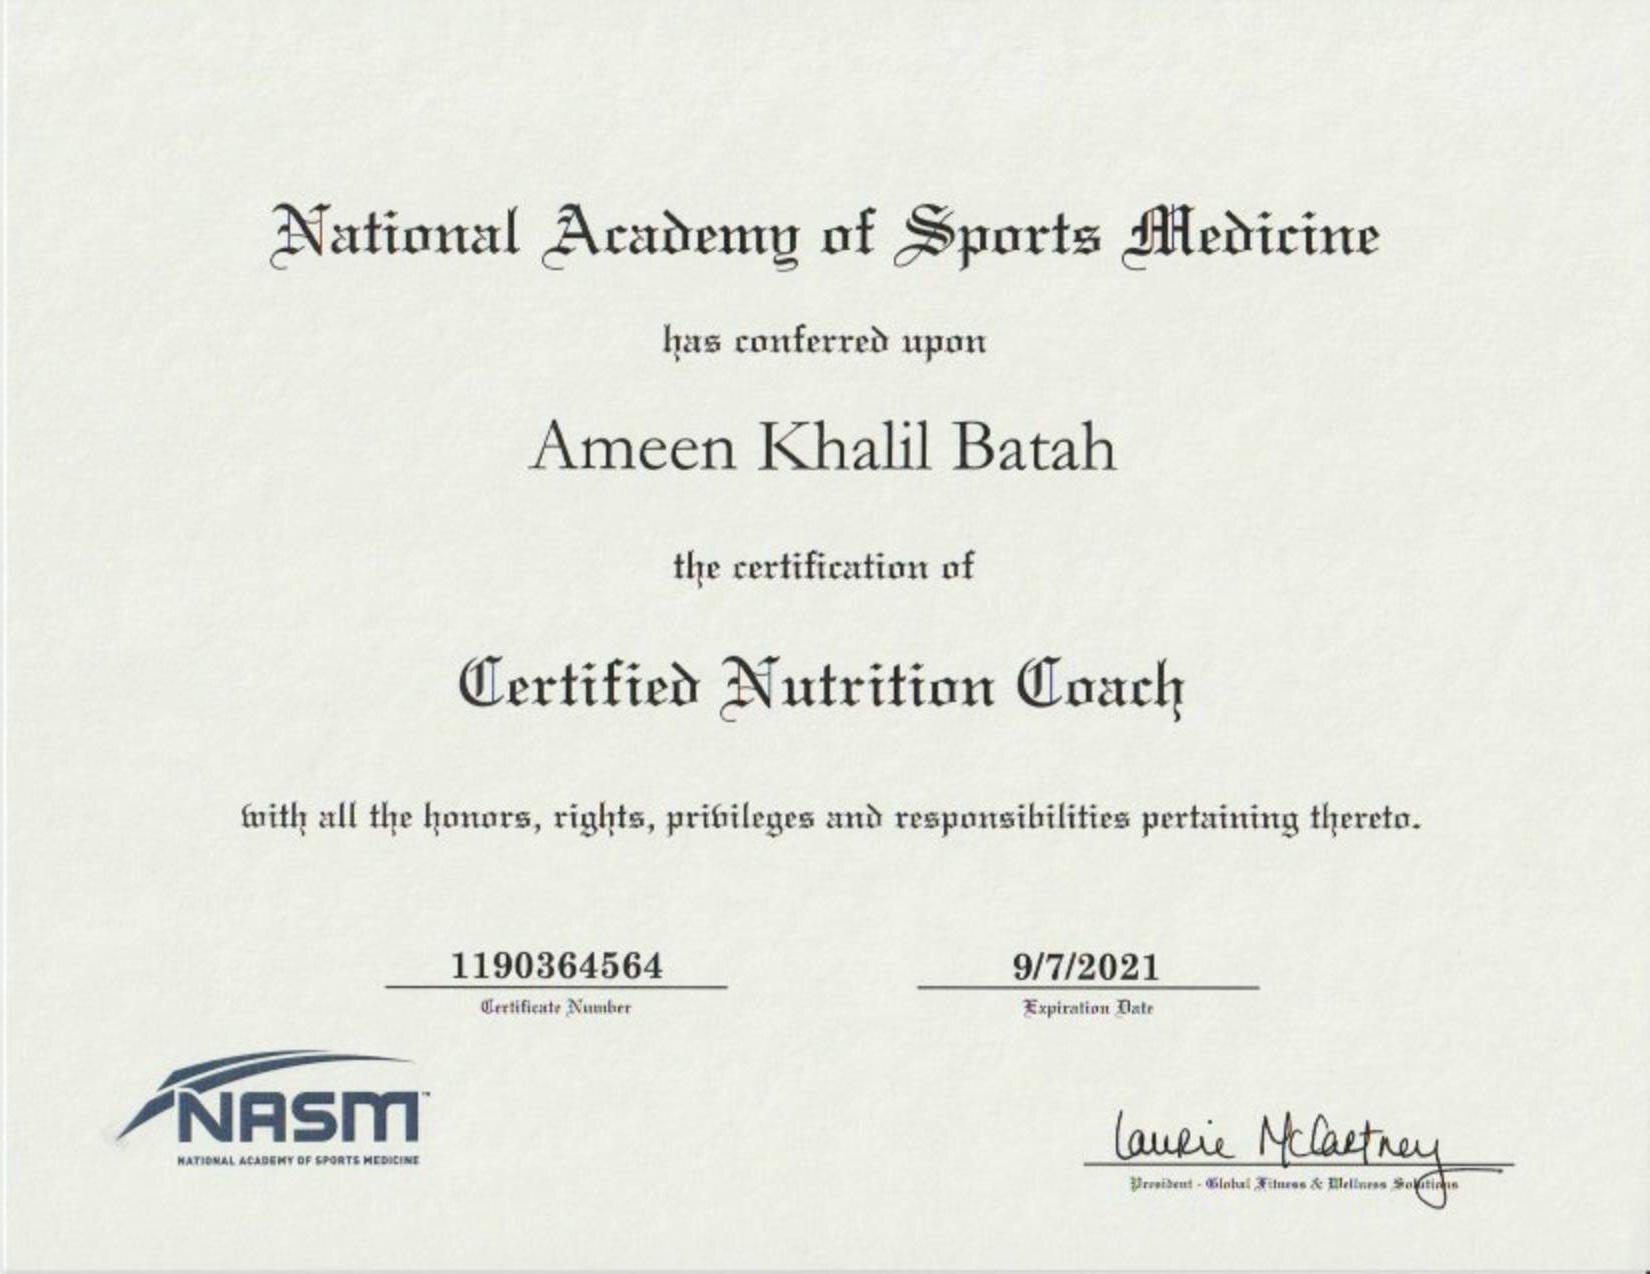 NASM - Certified Nutrition Coach Certification -